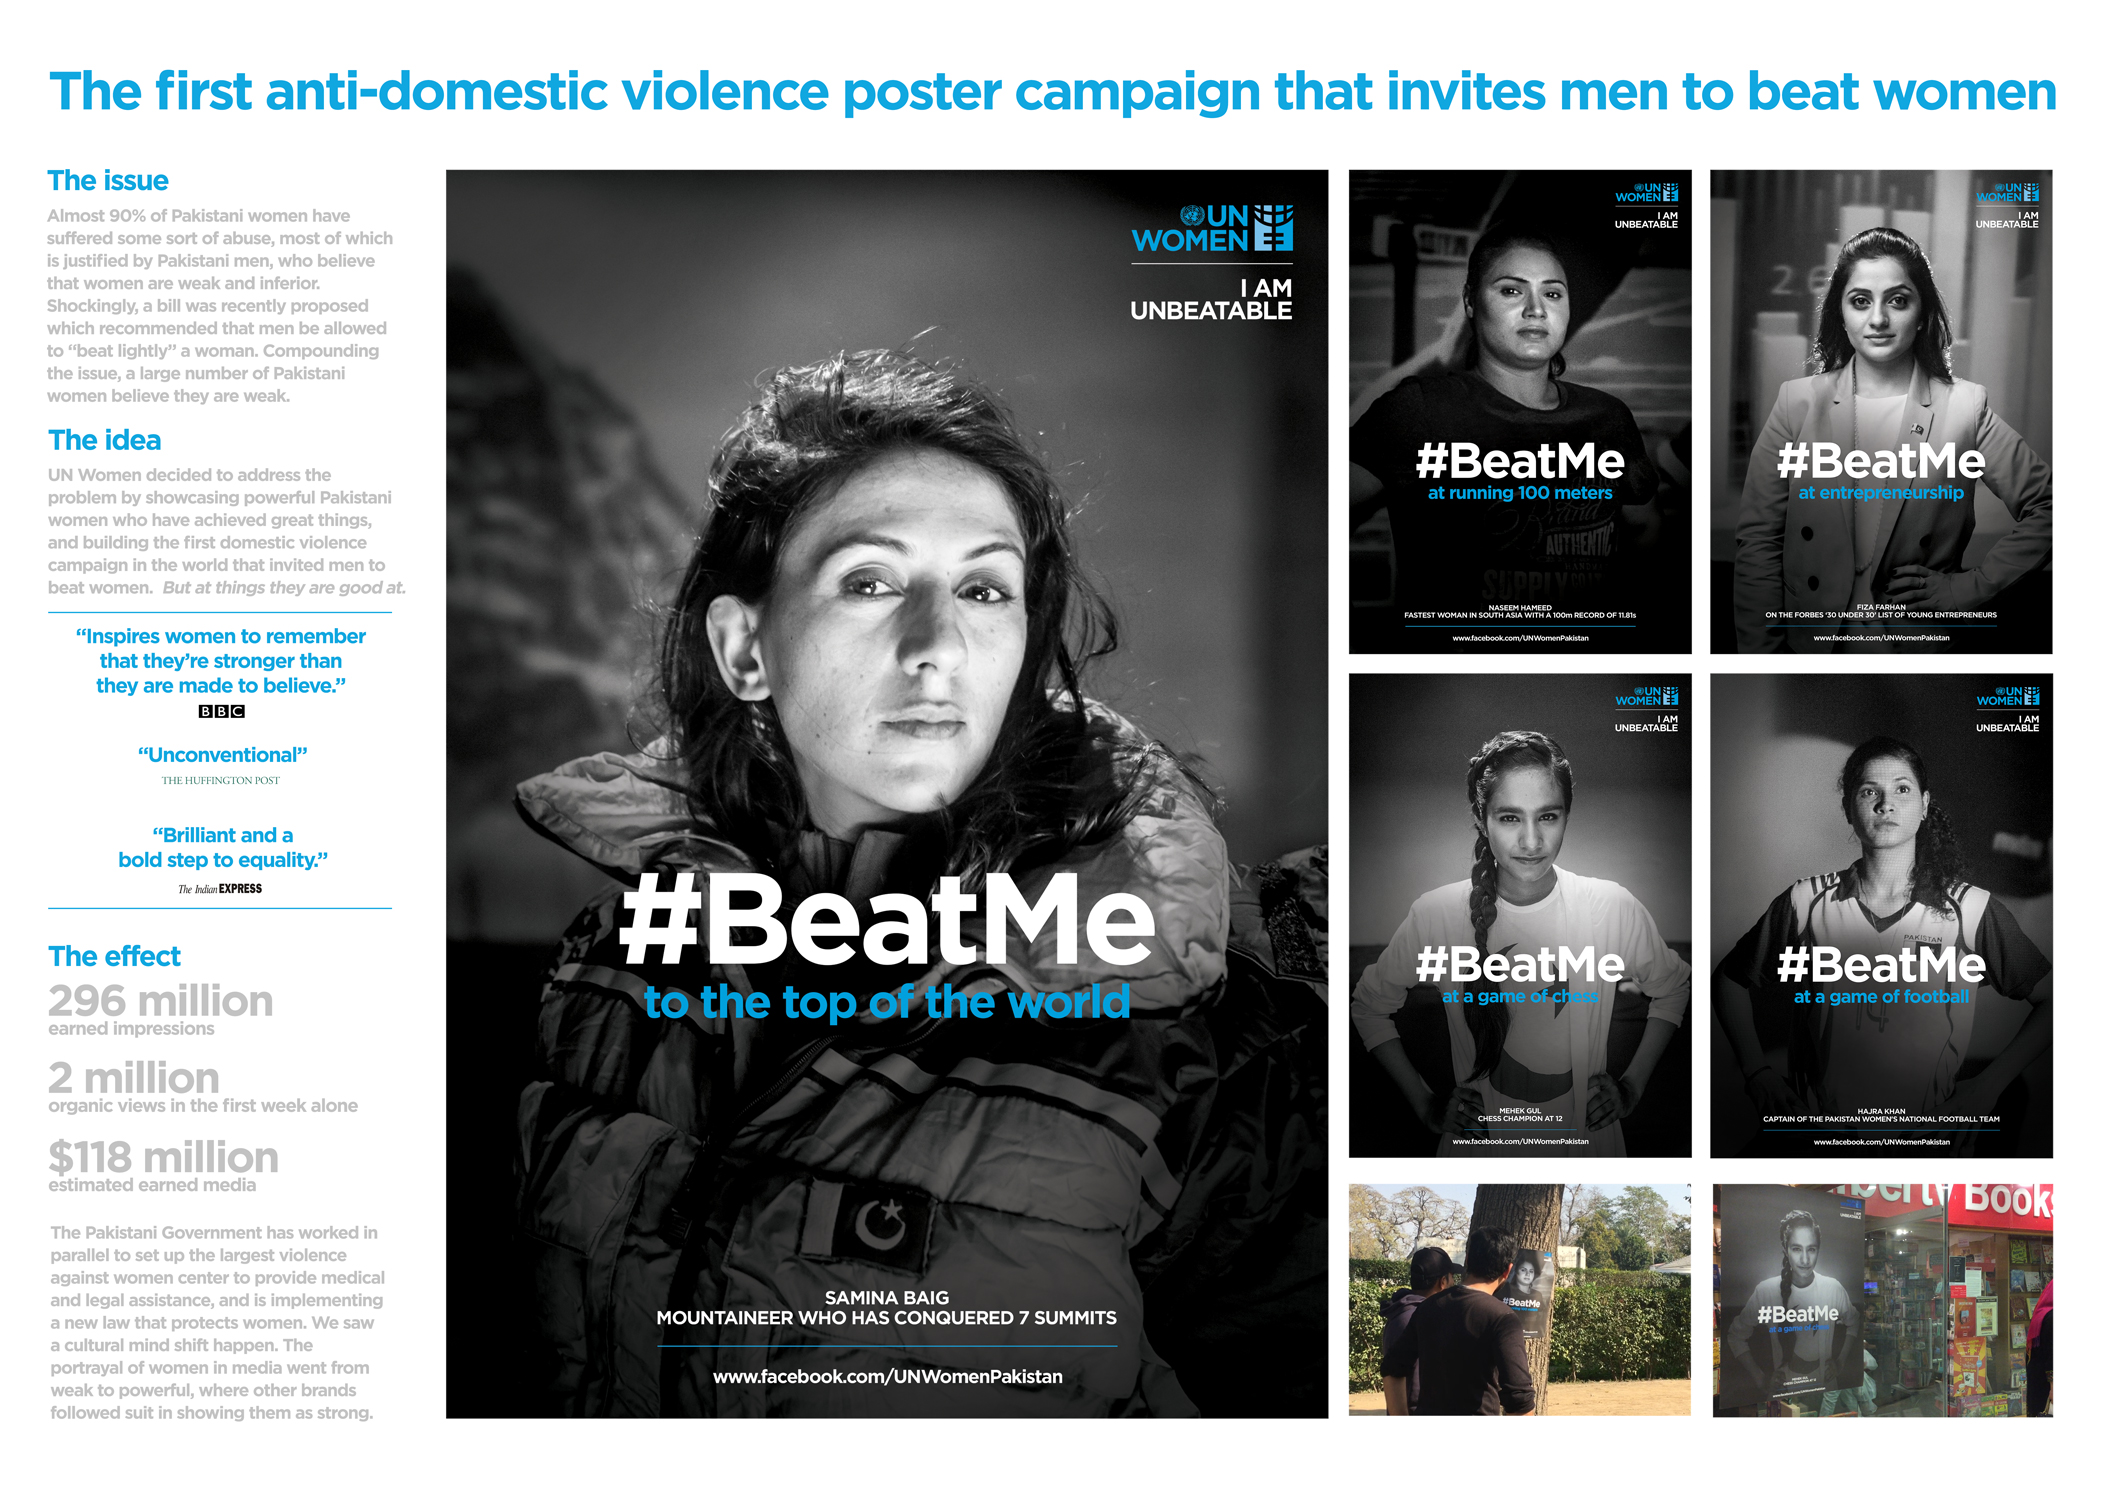 Image Media for #BeatMe